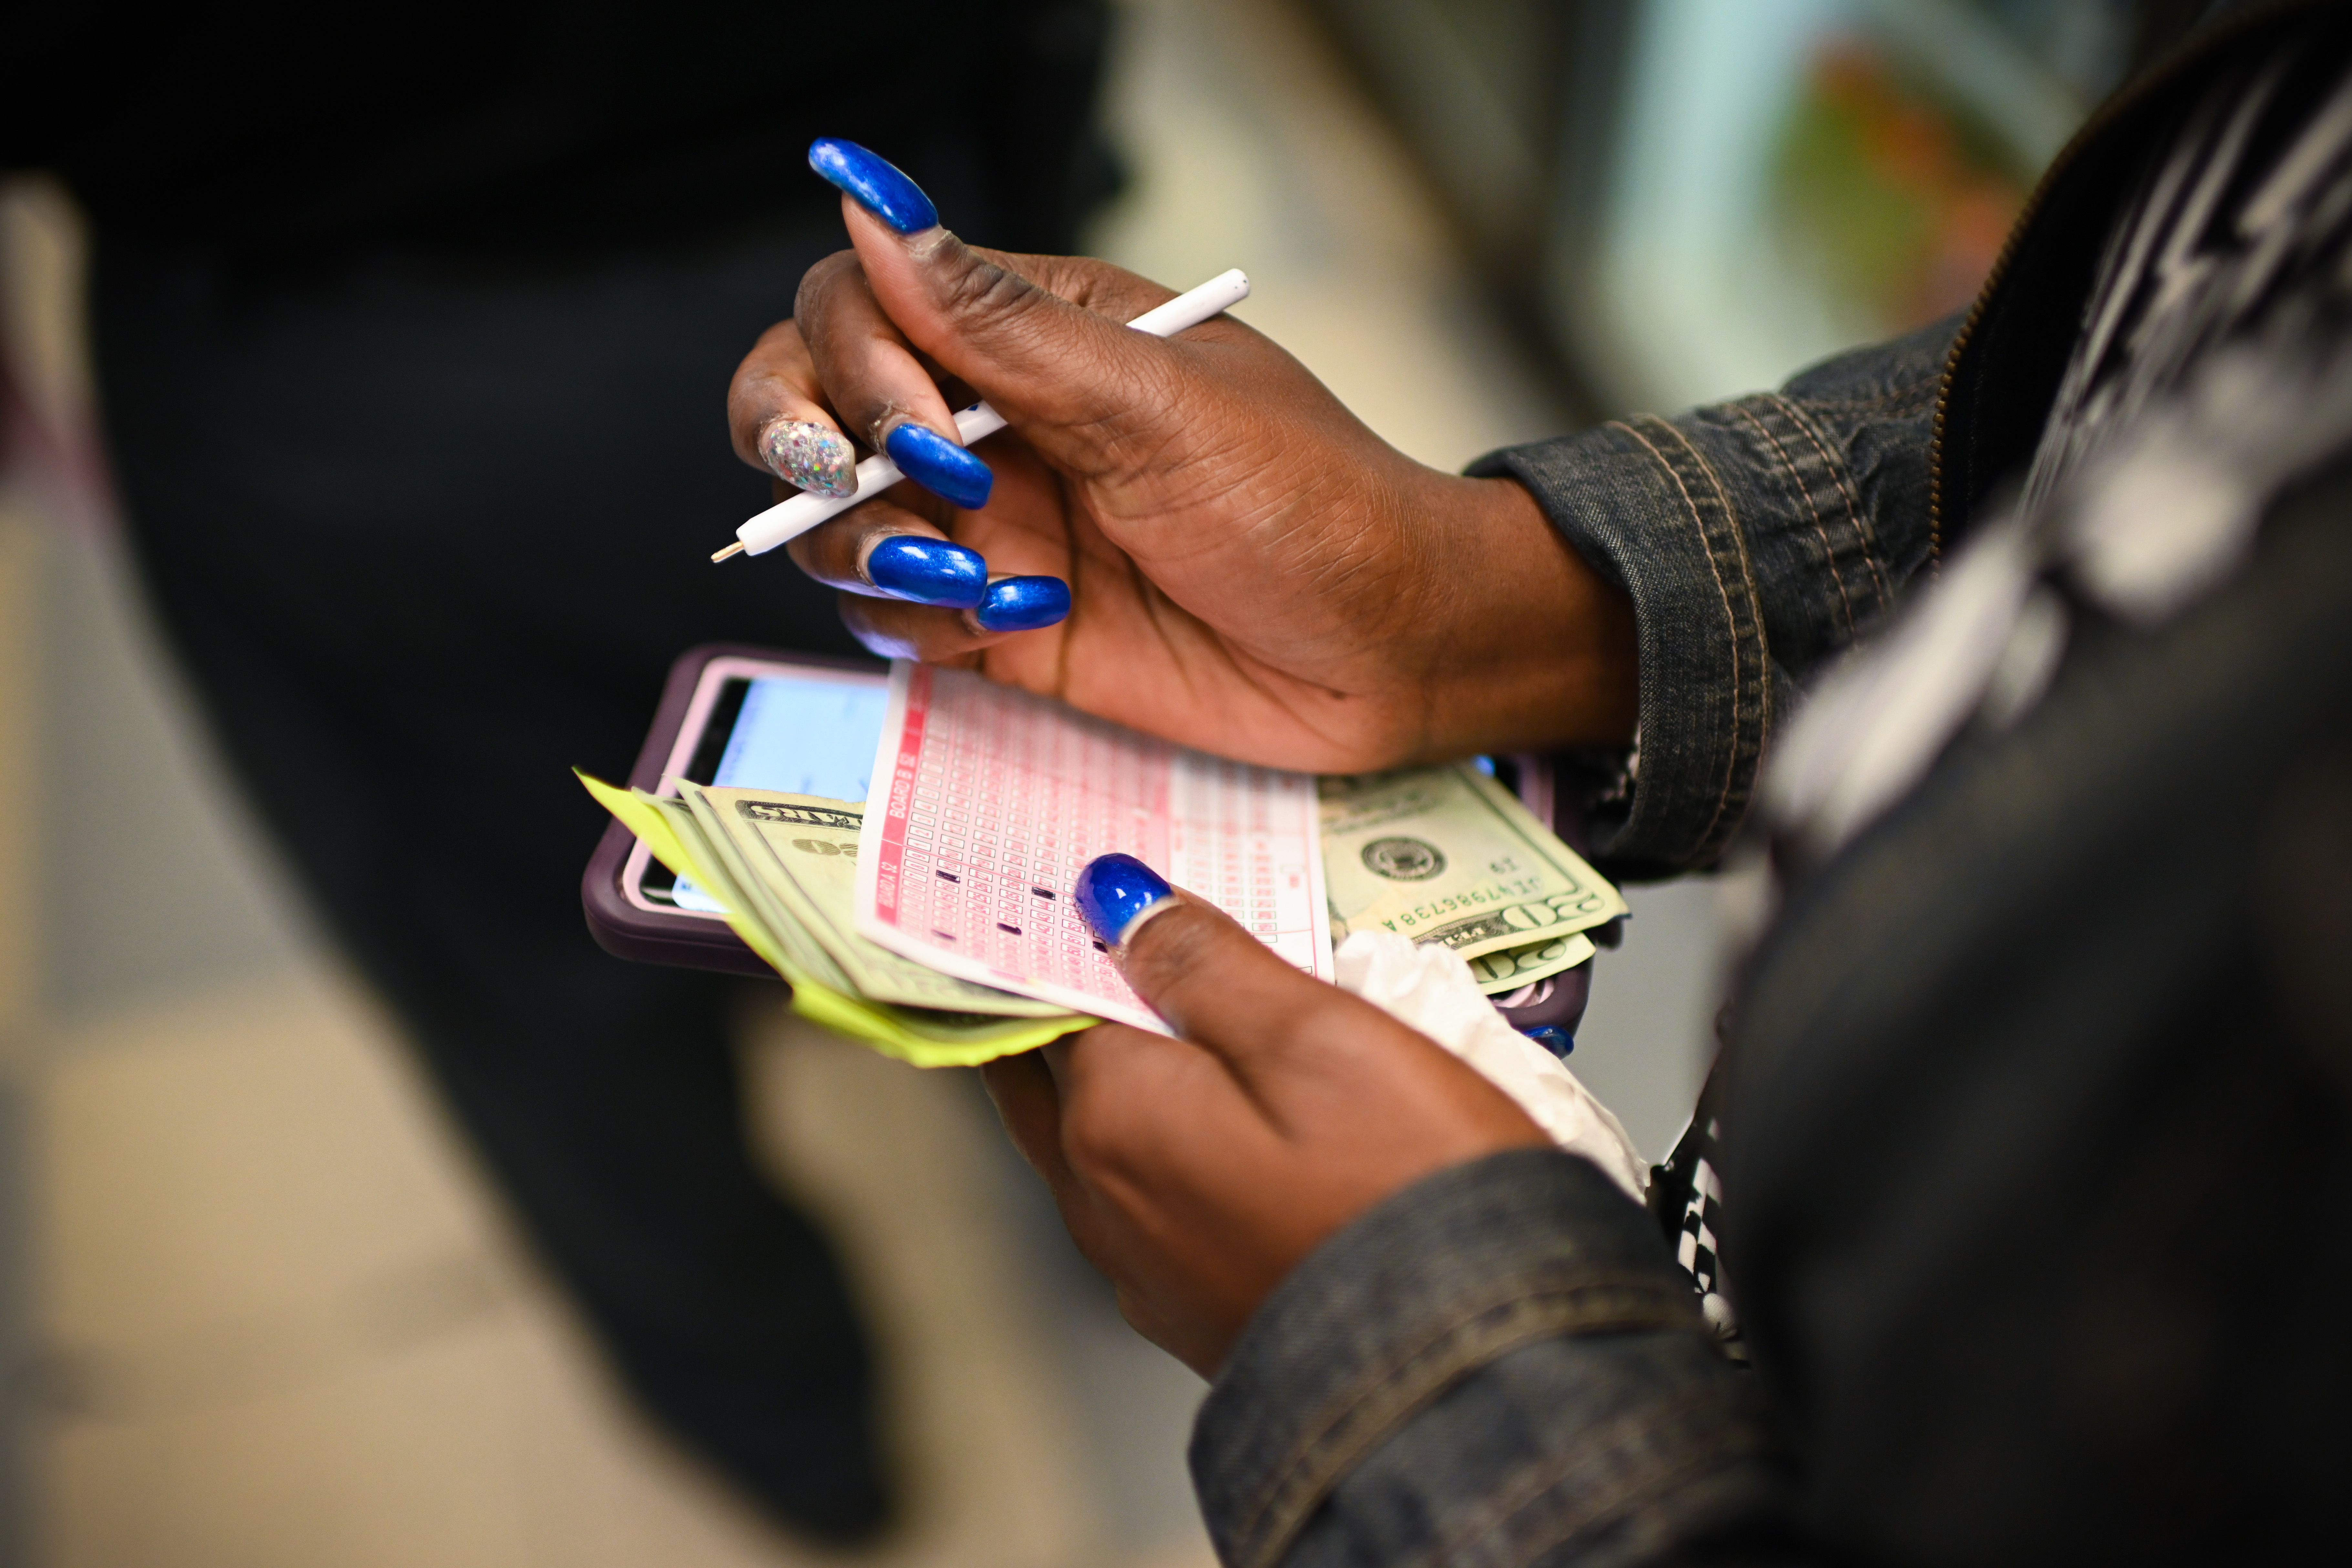 A woman buys a lottery ticket at a liquor store in Washington DC, on Oct. 23, 2018.